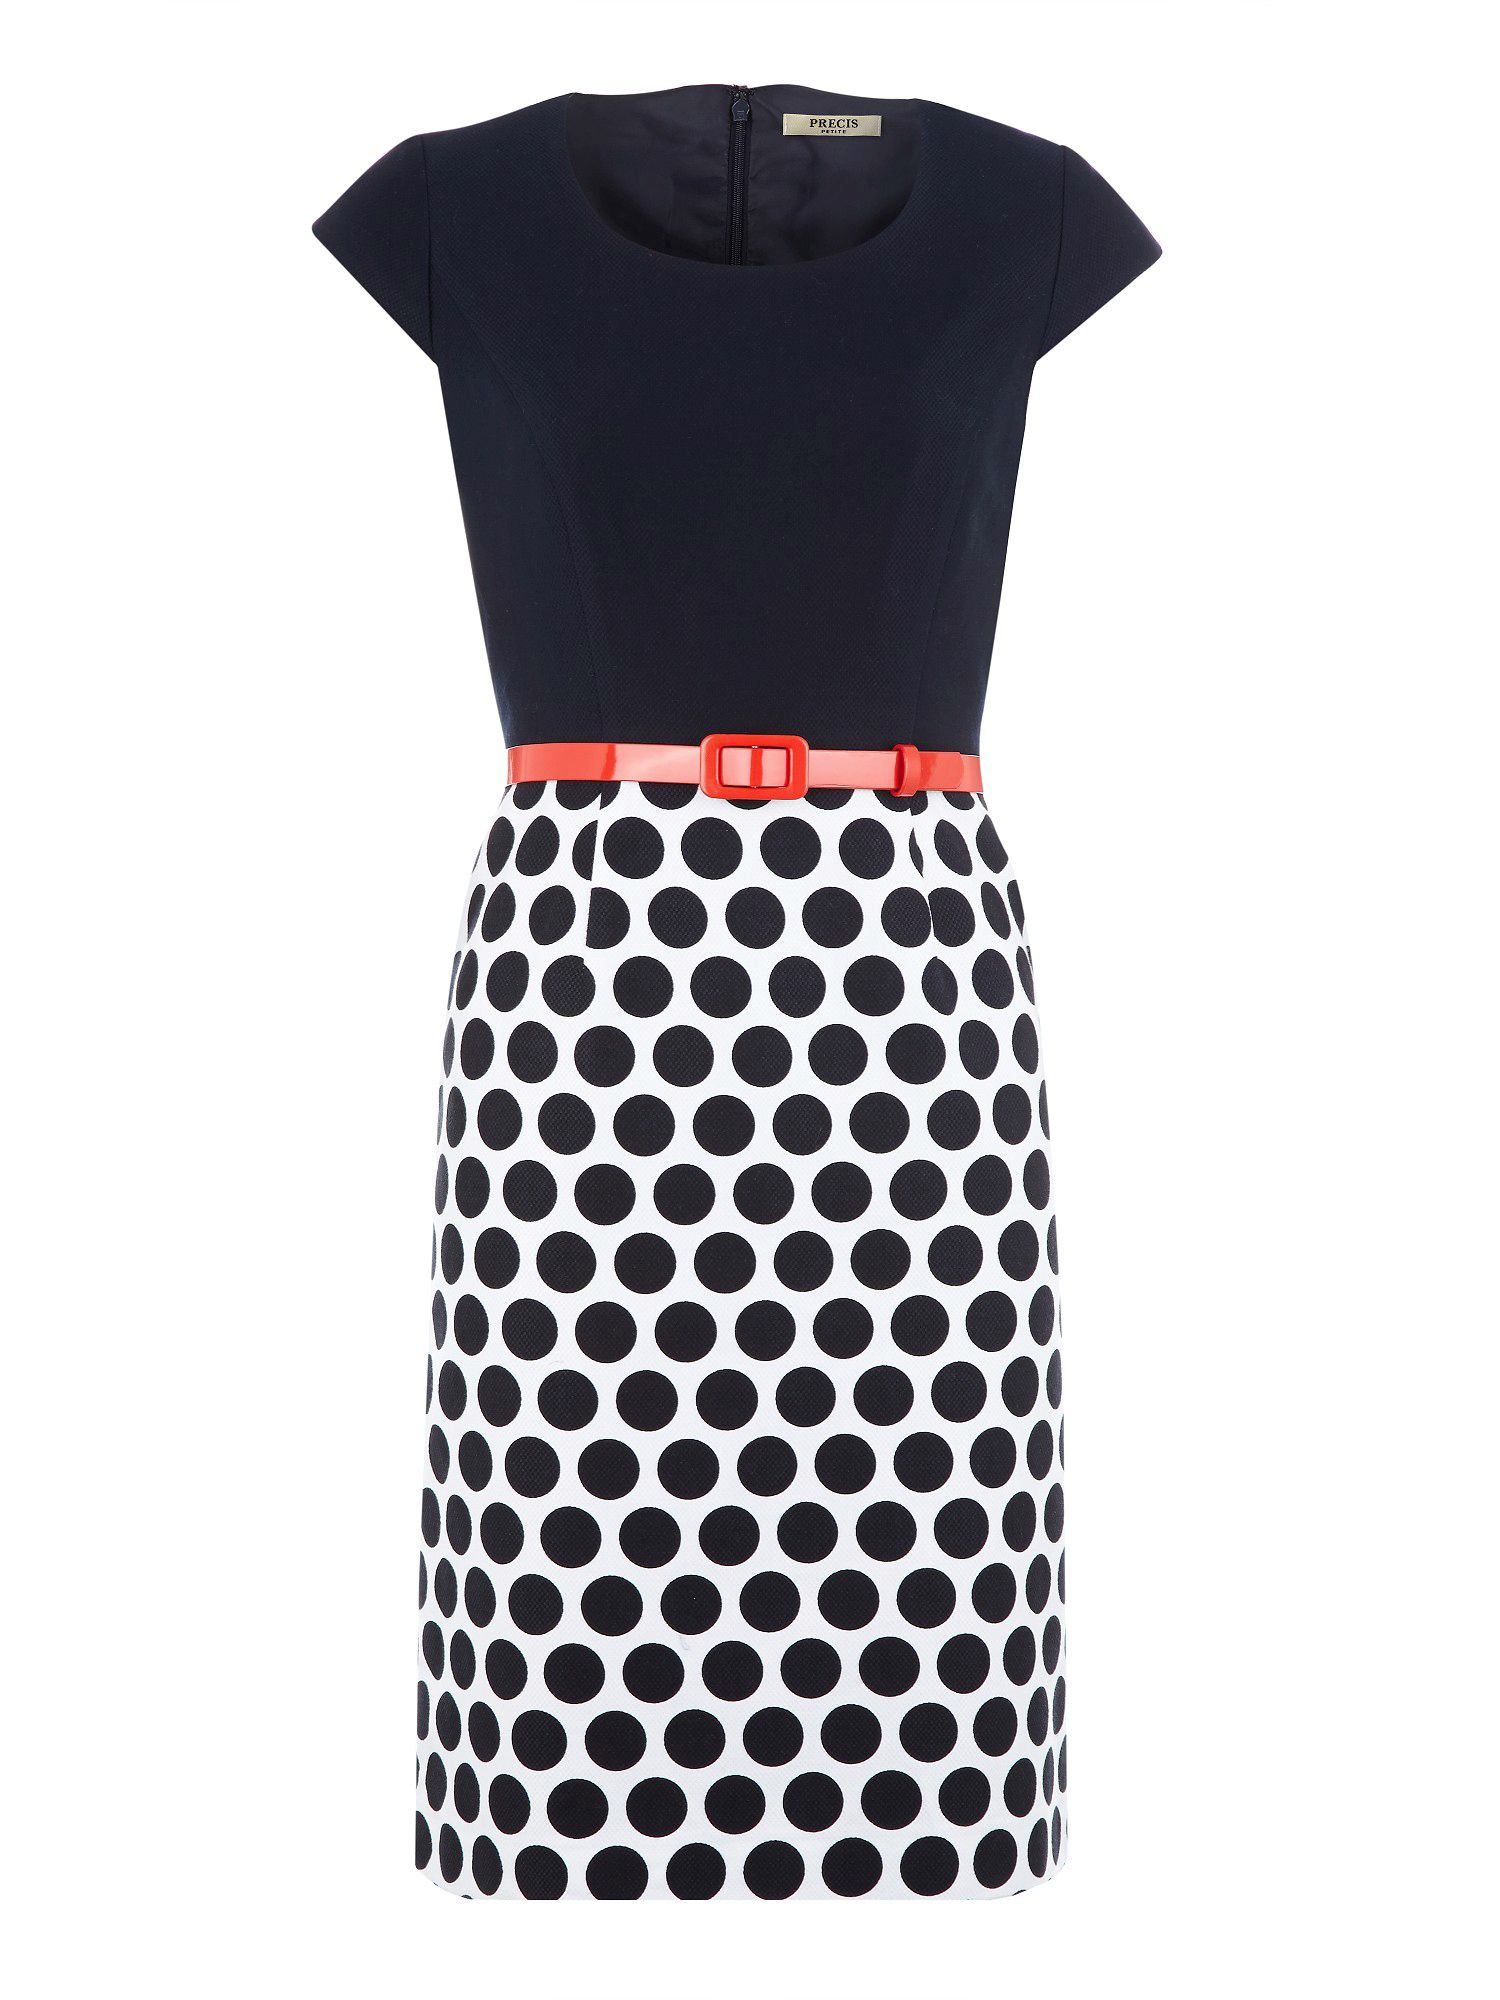 Spot skirt shift dress